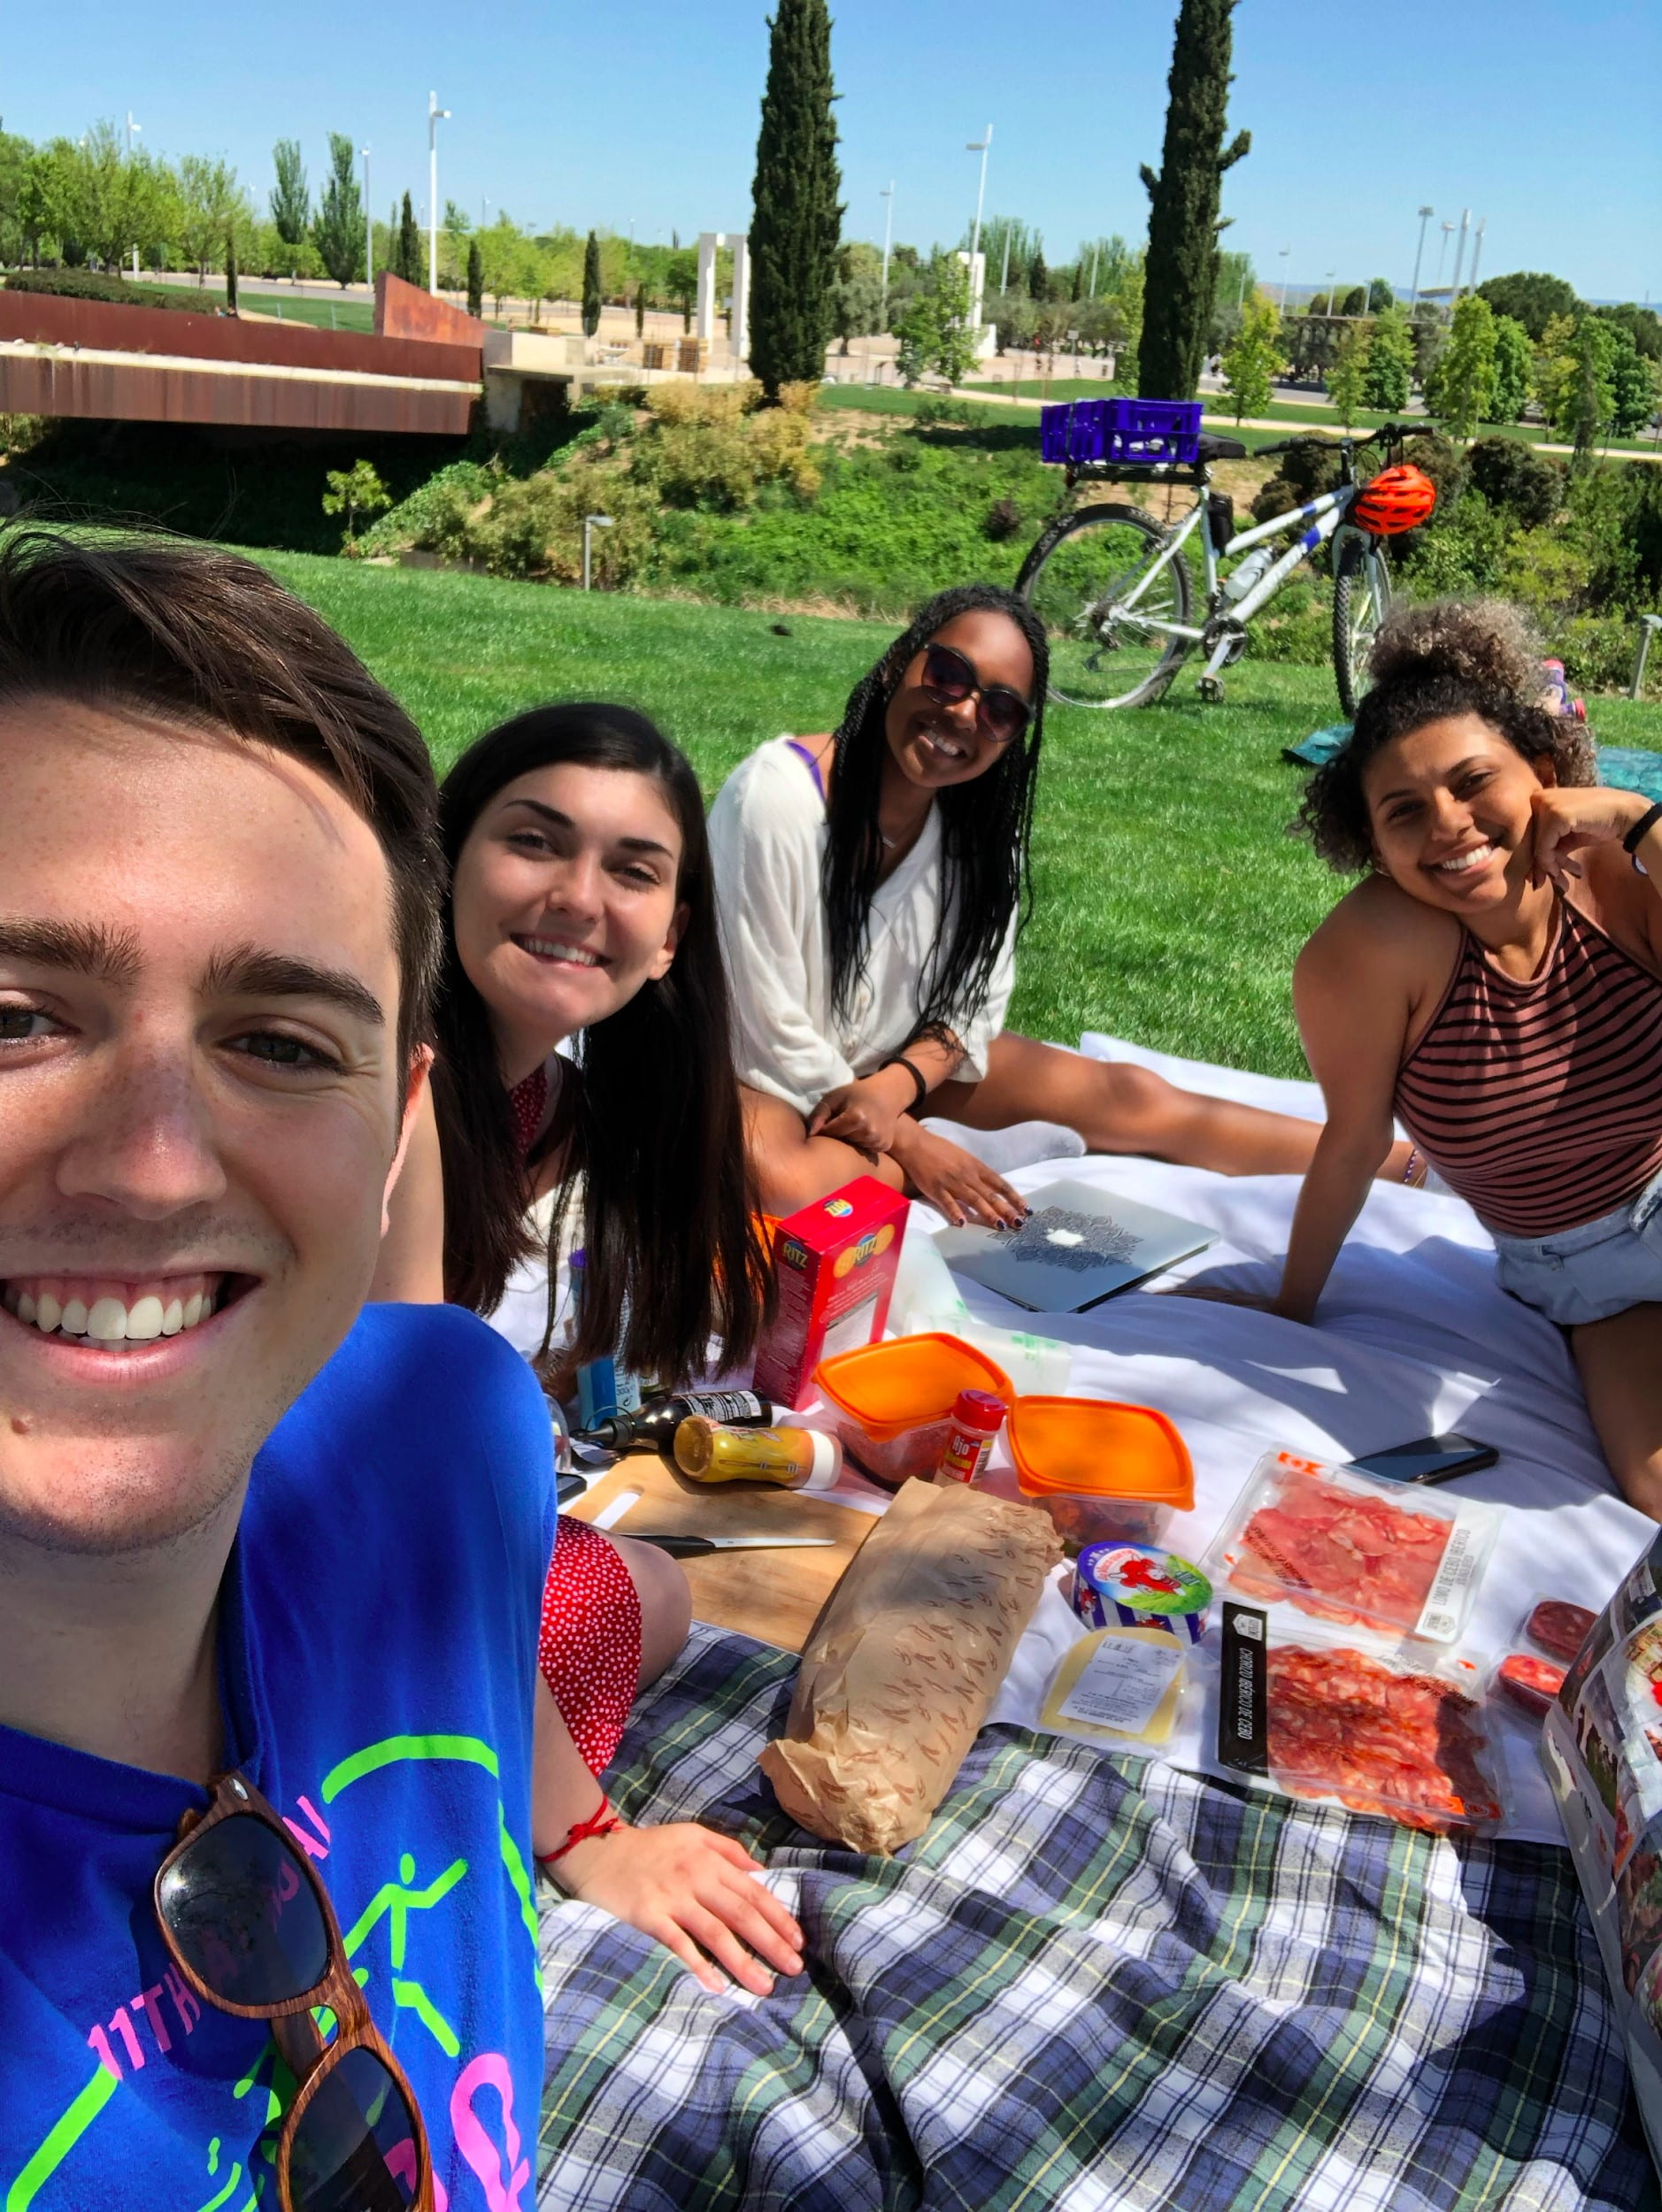 Four students sitting on white blanket with food for picnic and green grass and bicycle in background